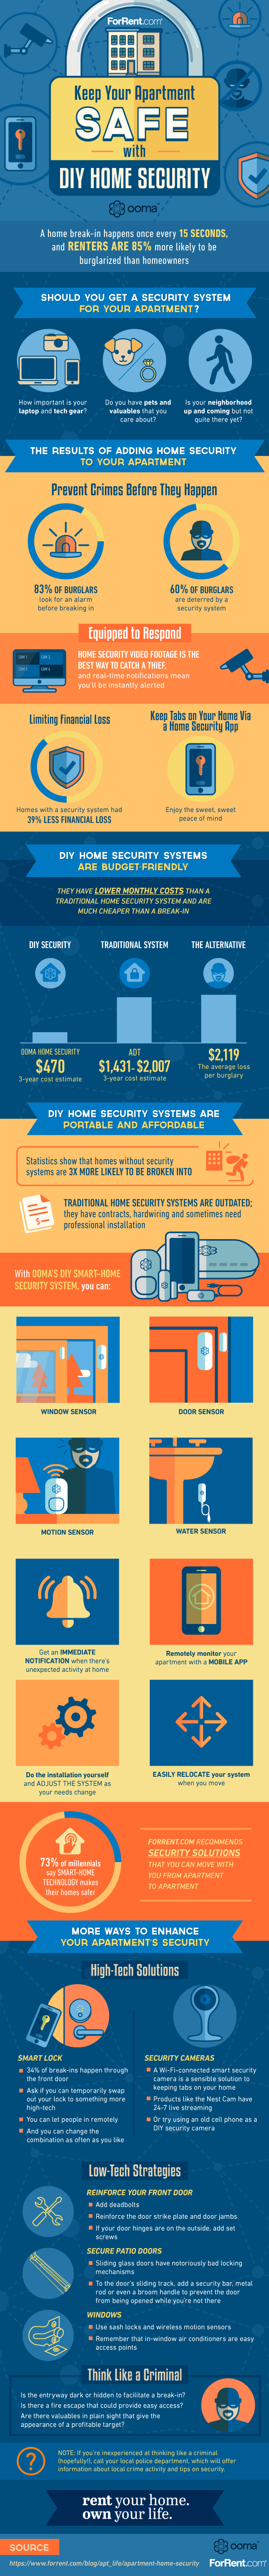 keep your apartment safe with DIY home security